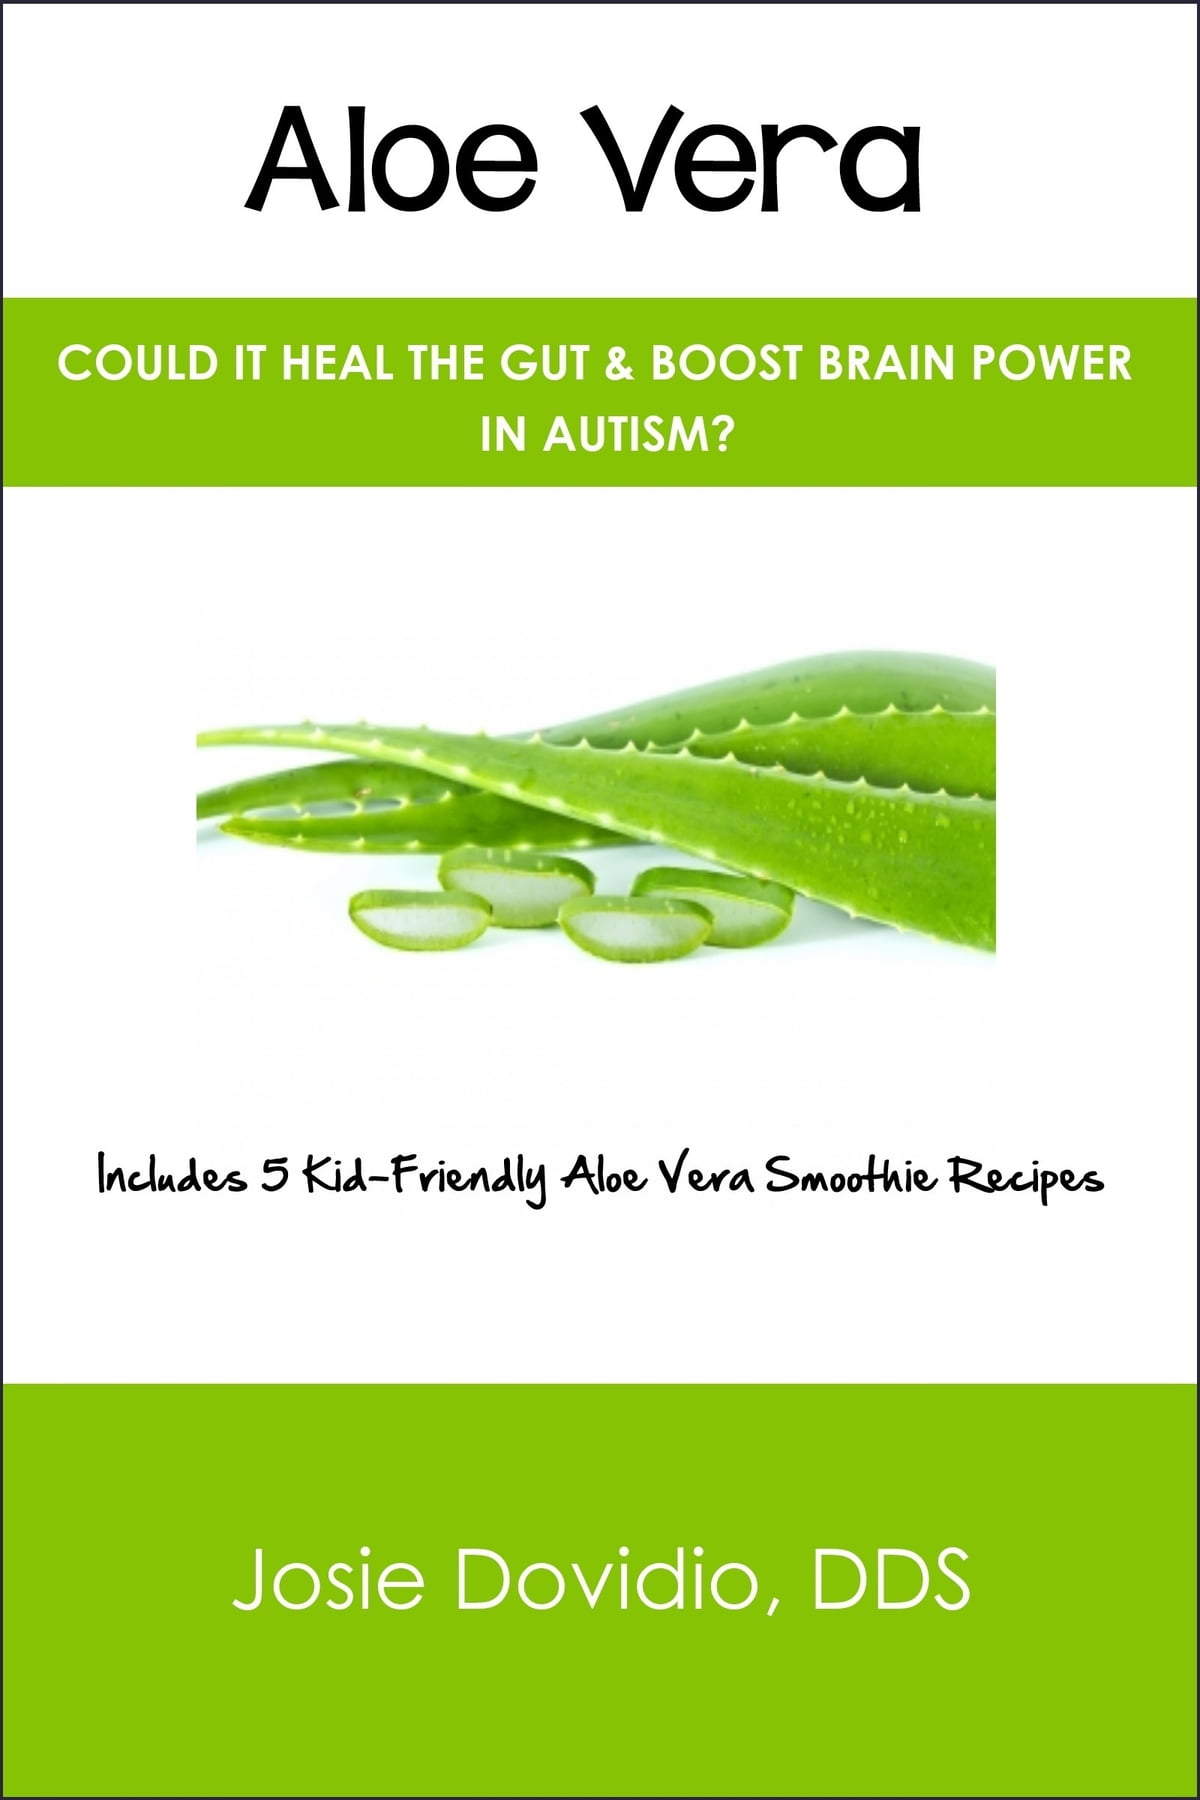 Achat Aloe Vera Aloe Vera Could It Heal The Gut Boost Brain Power In Autism Ebook By Josie Dovidio Rakuten Kobo